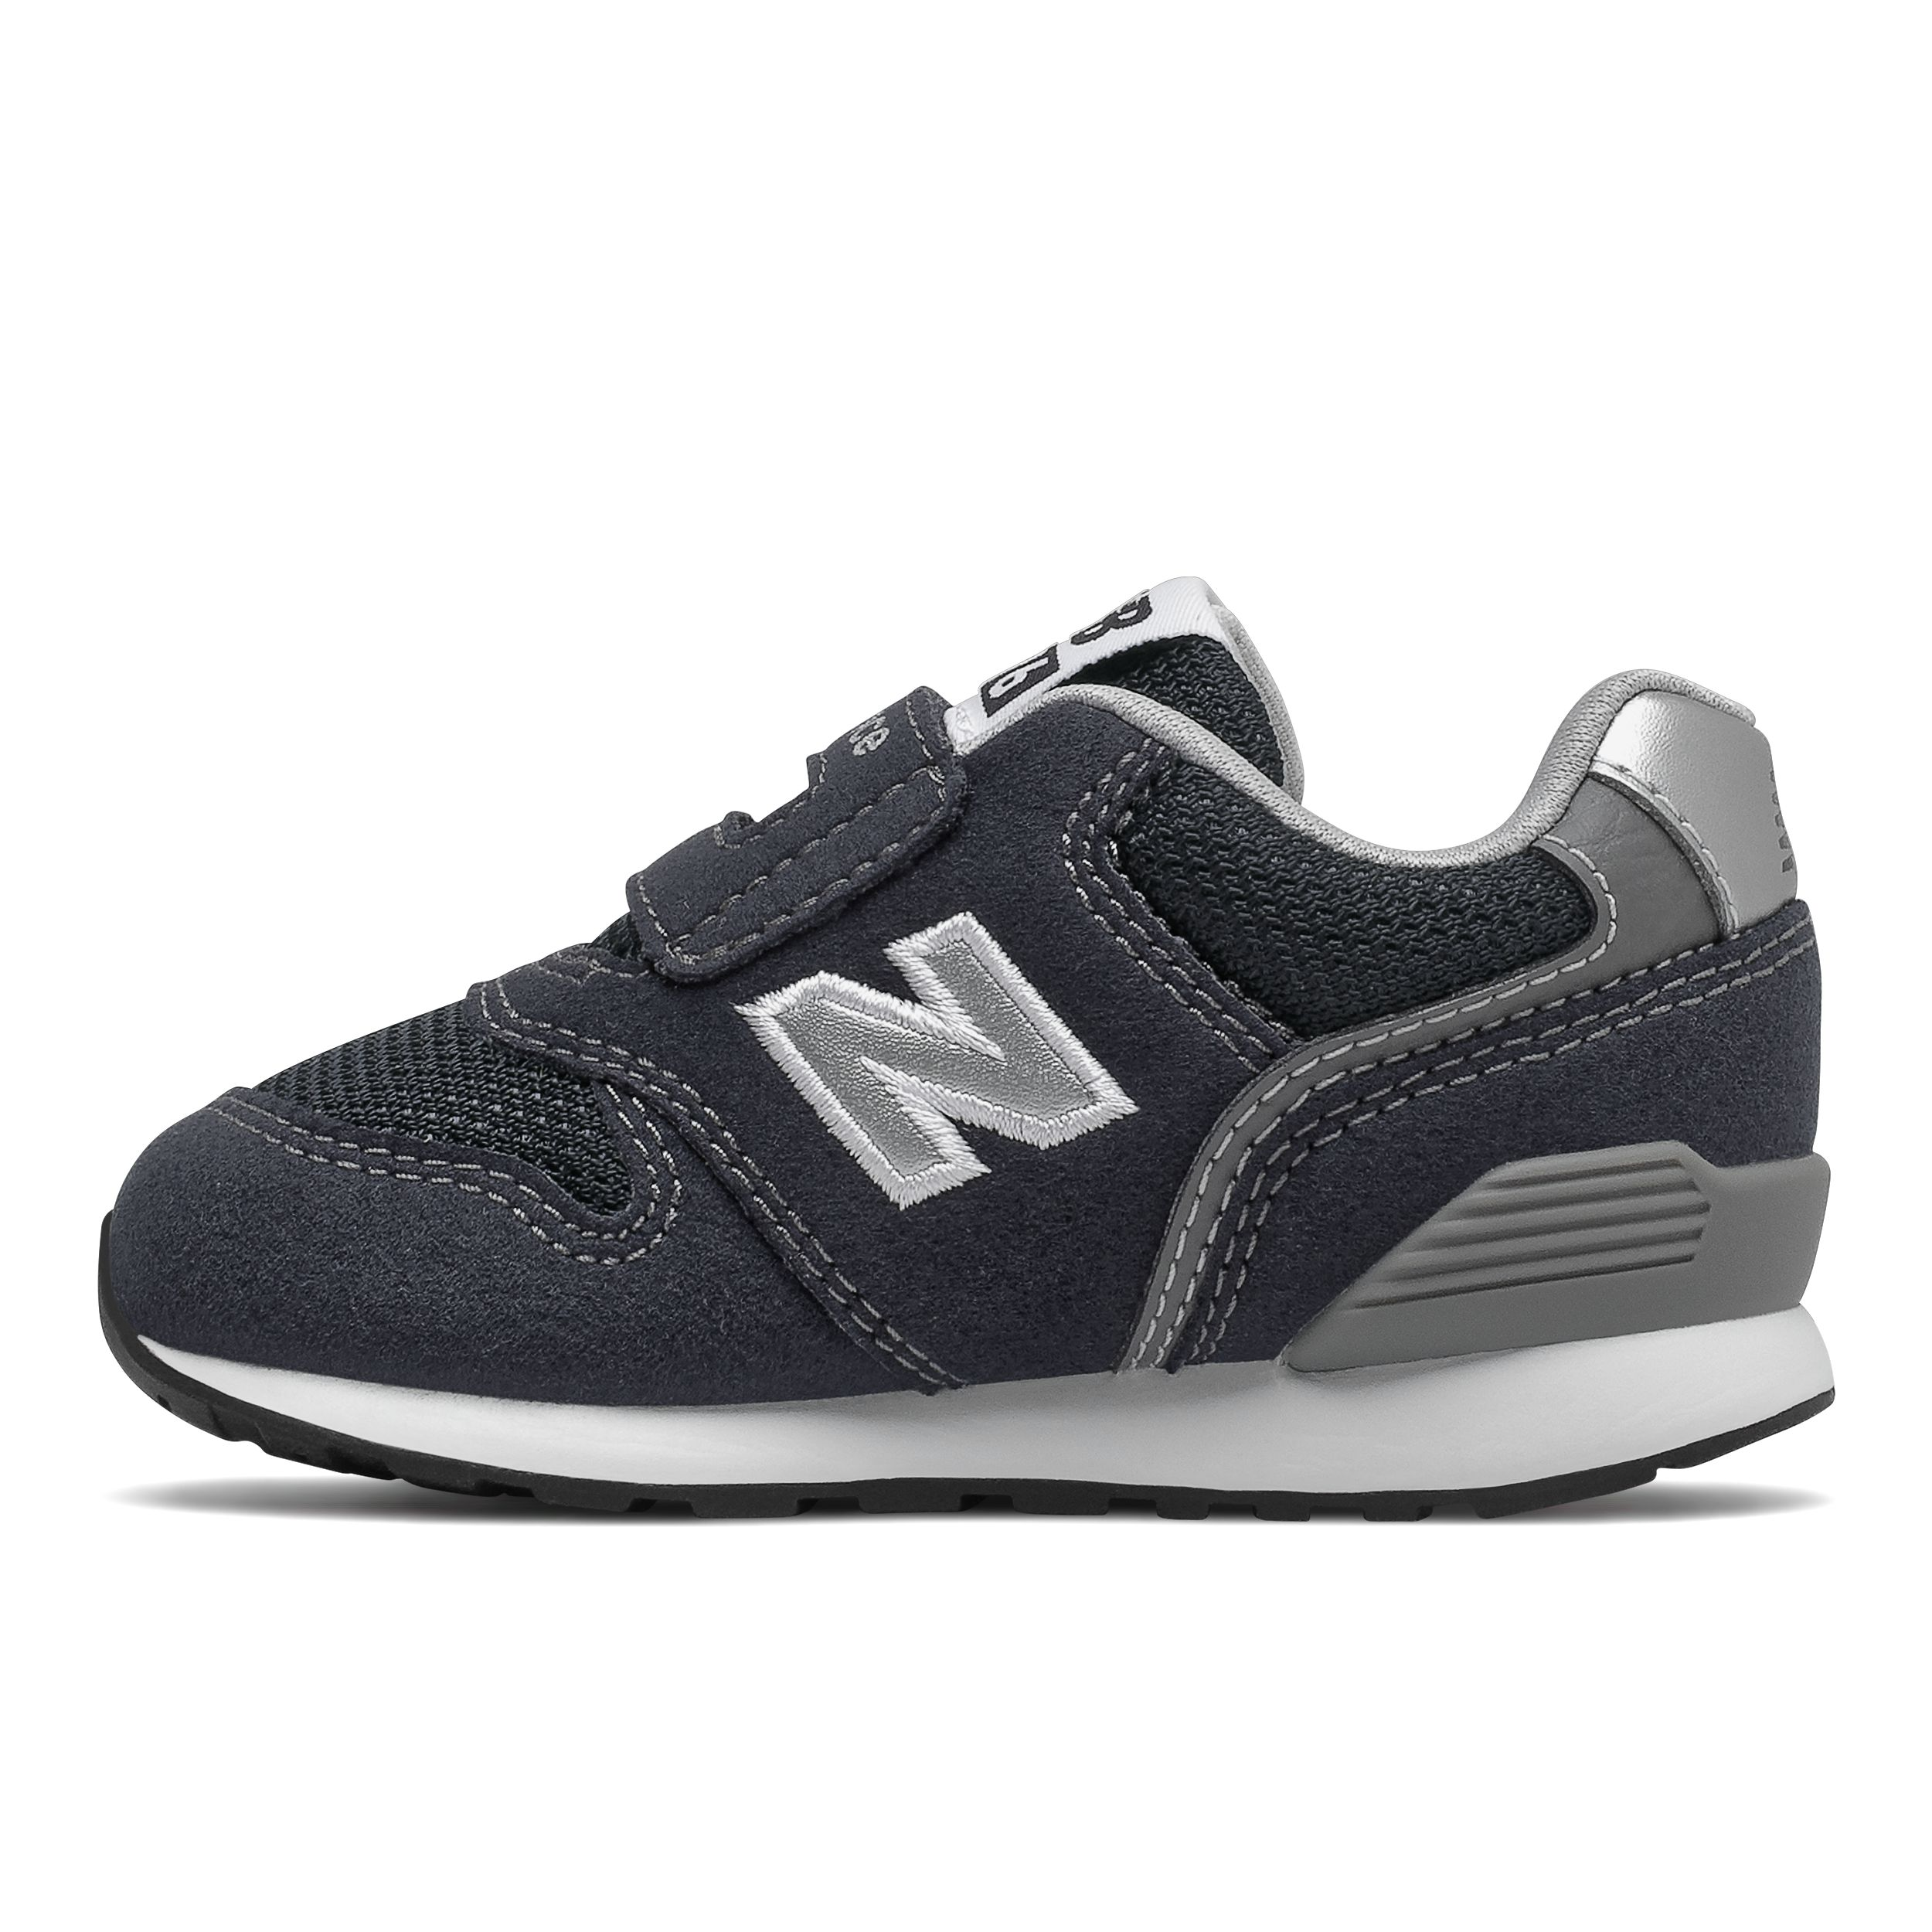 New Balance Classic 996 sneakers, navy, 22.5